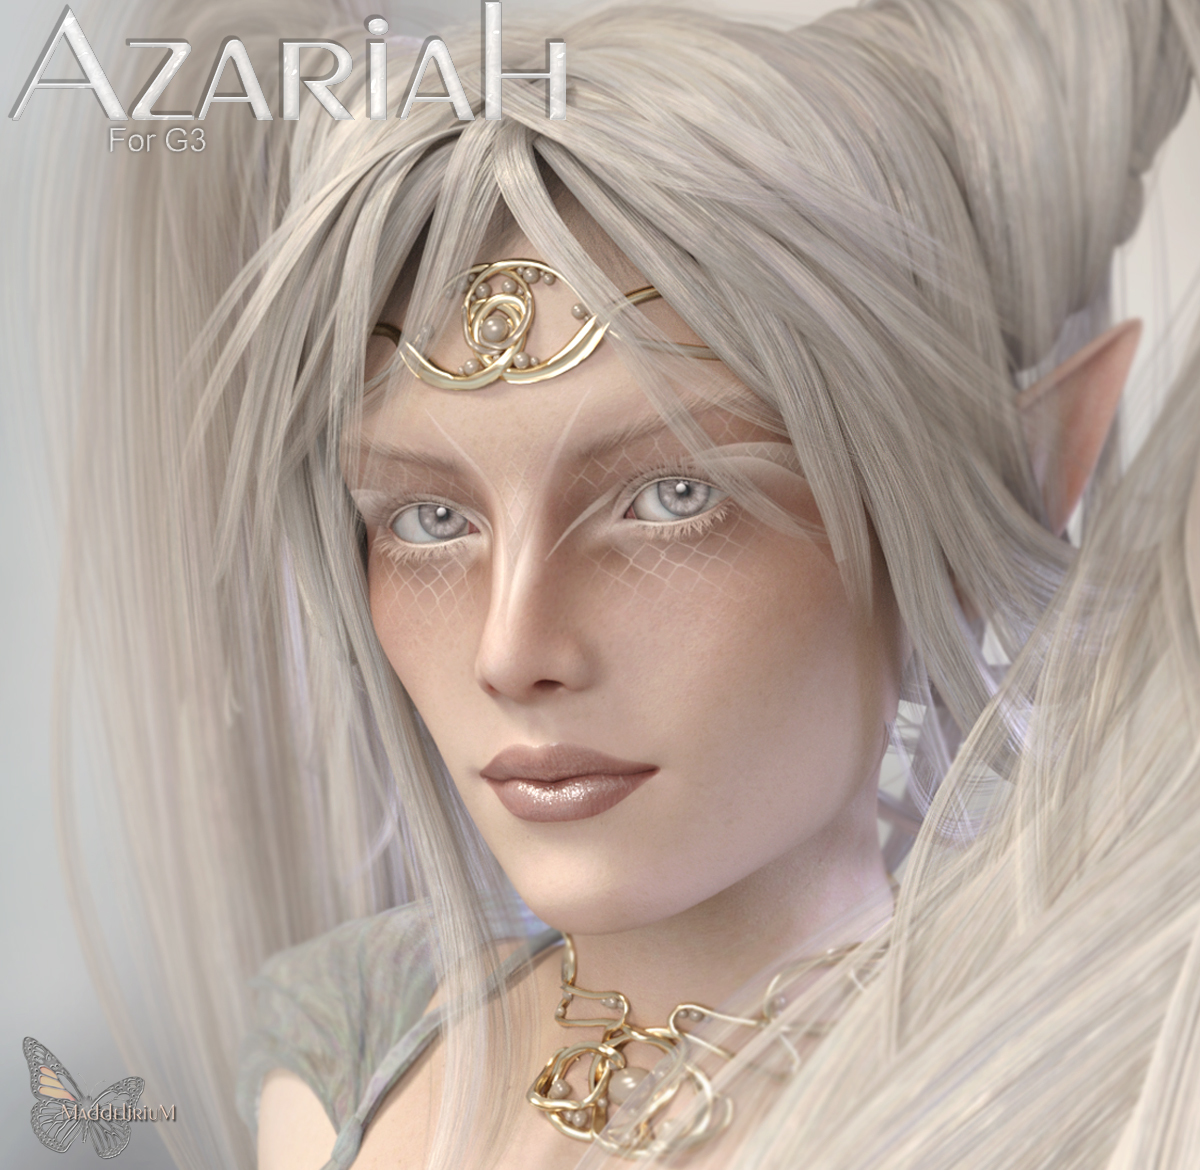 Azariah for G3: Available Now!